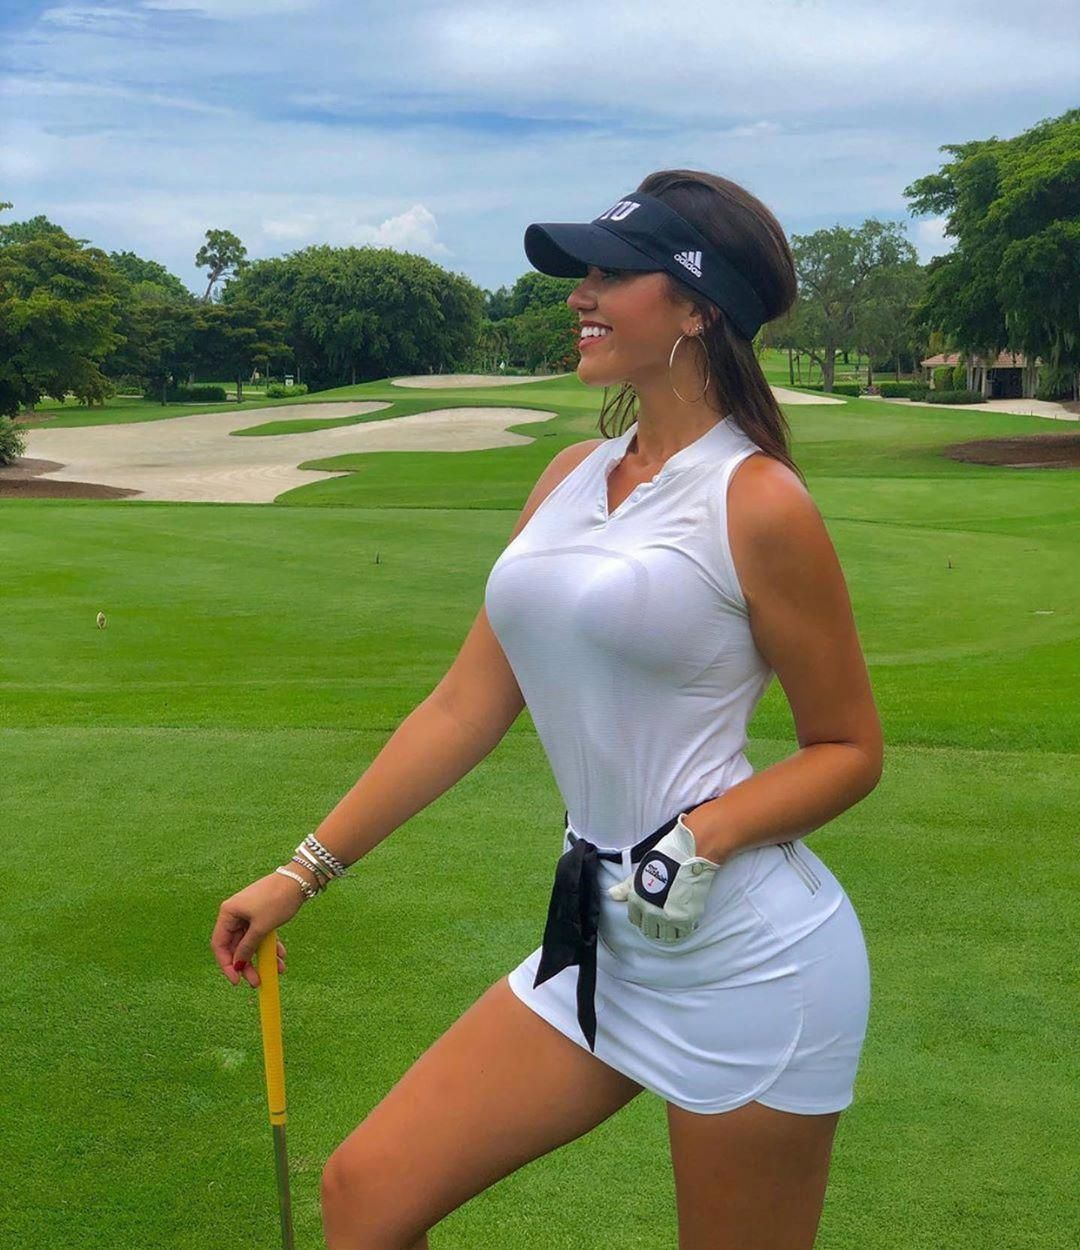 Pin on golf girls picture